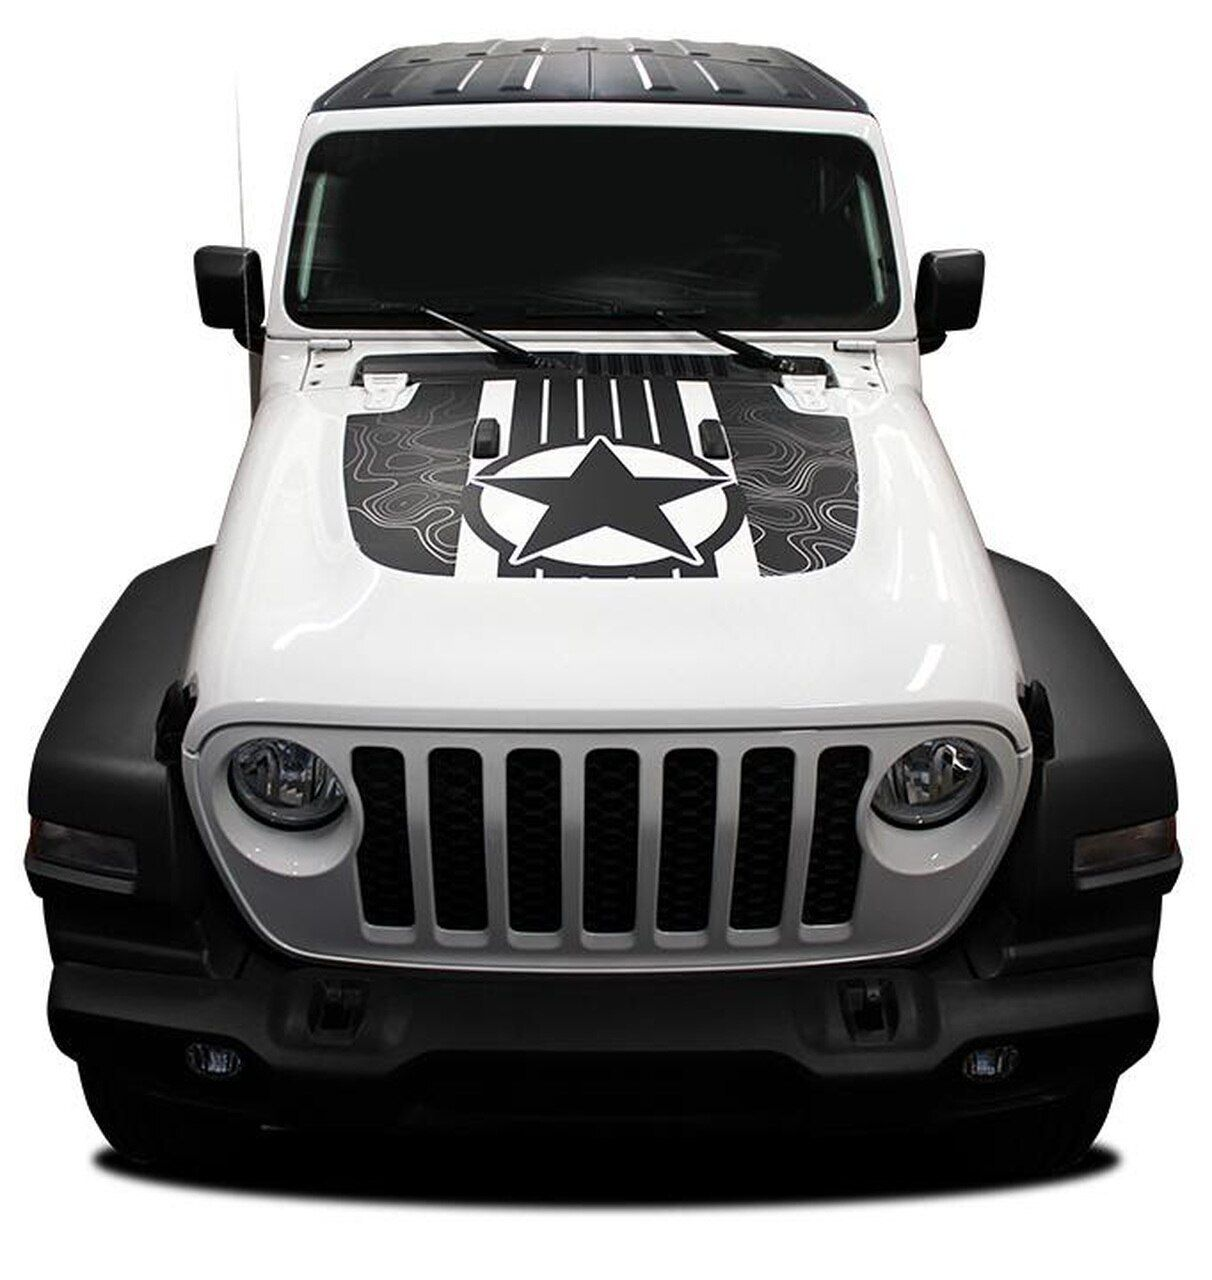 2020 Jeep Wrangler Hood Decals Journey Hood Jl 2018 2020 Digital